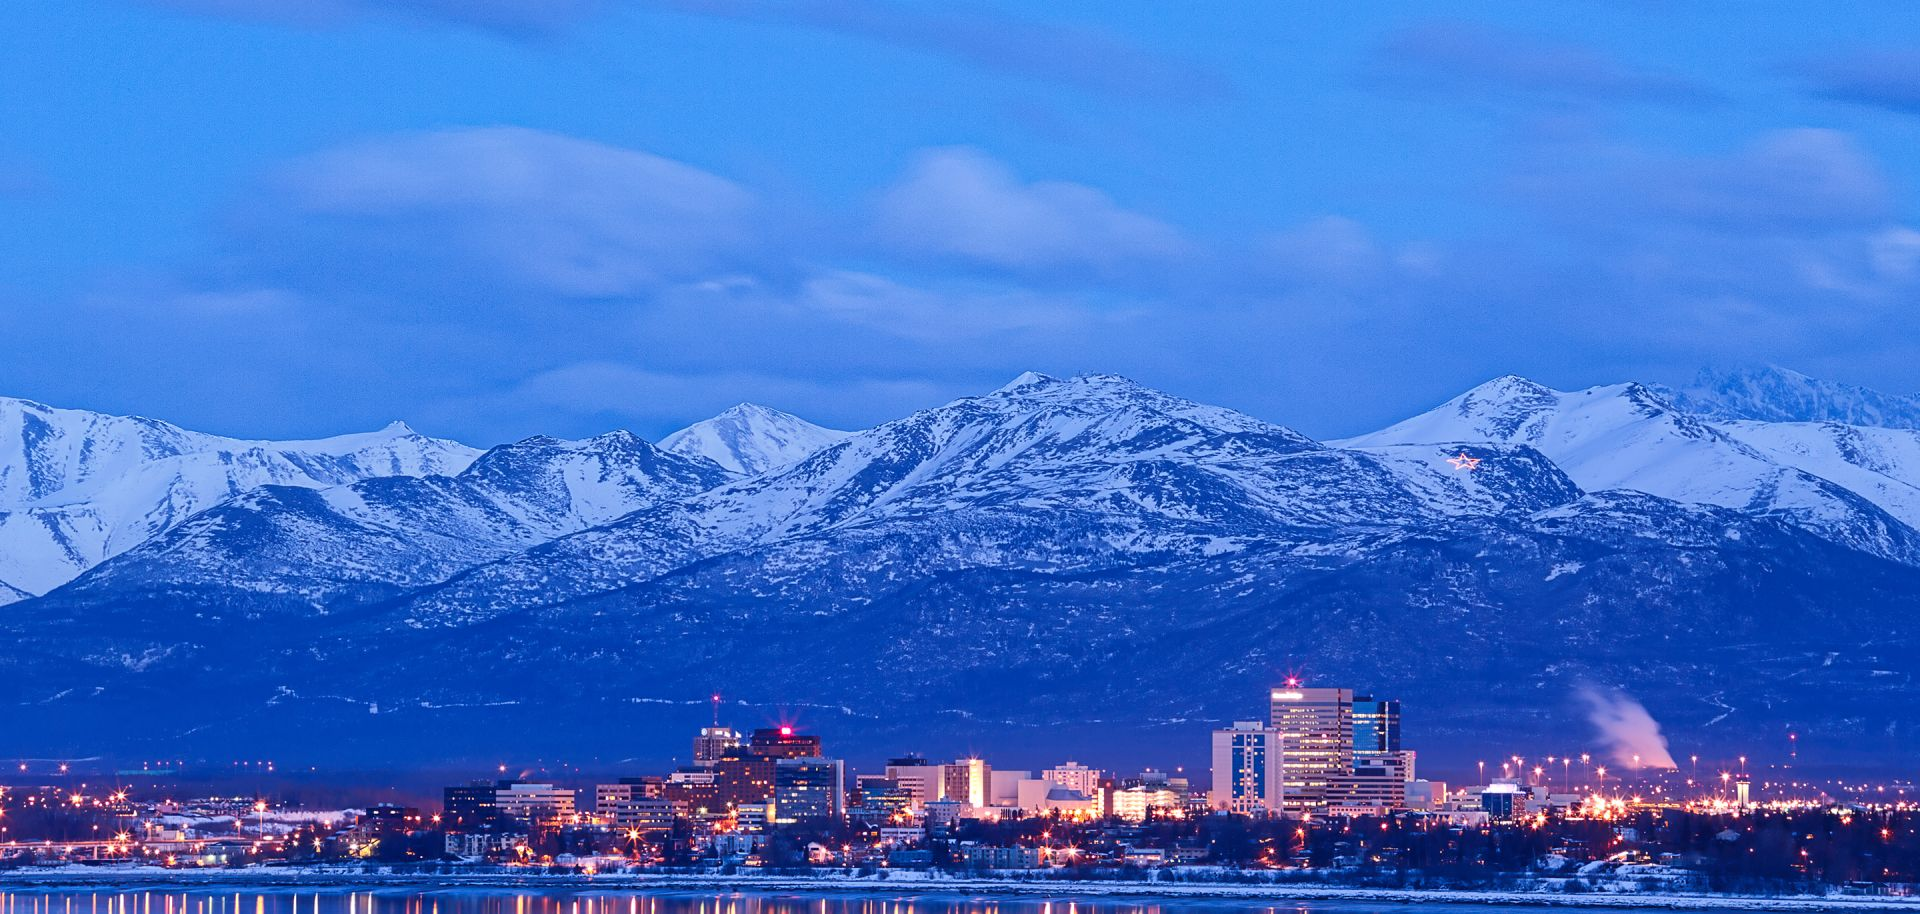 A skyline view of Anchorage, Alaska, and the Chugach Mountains at dusk.